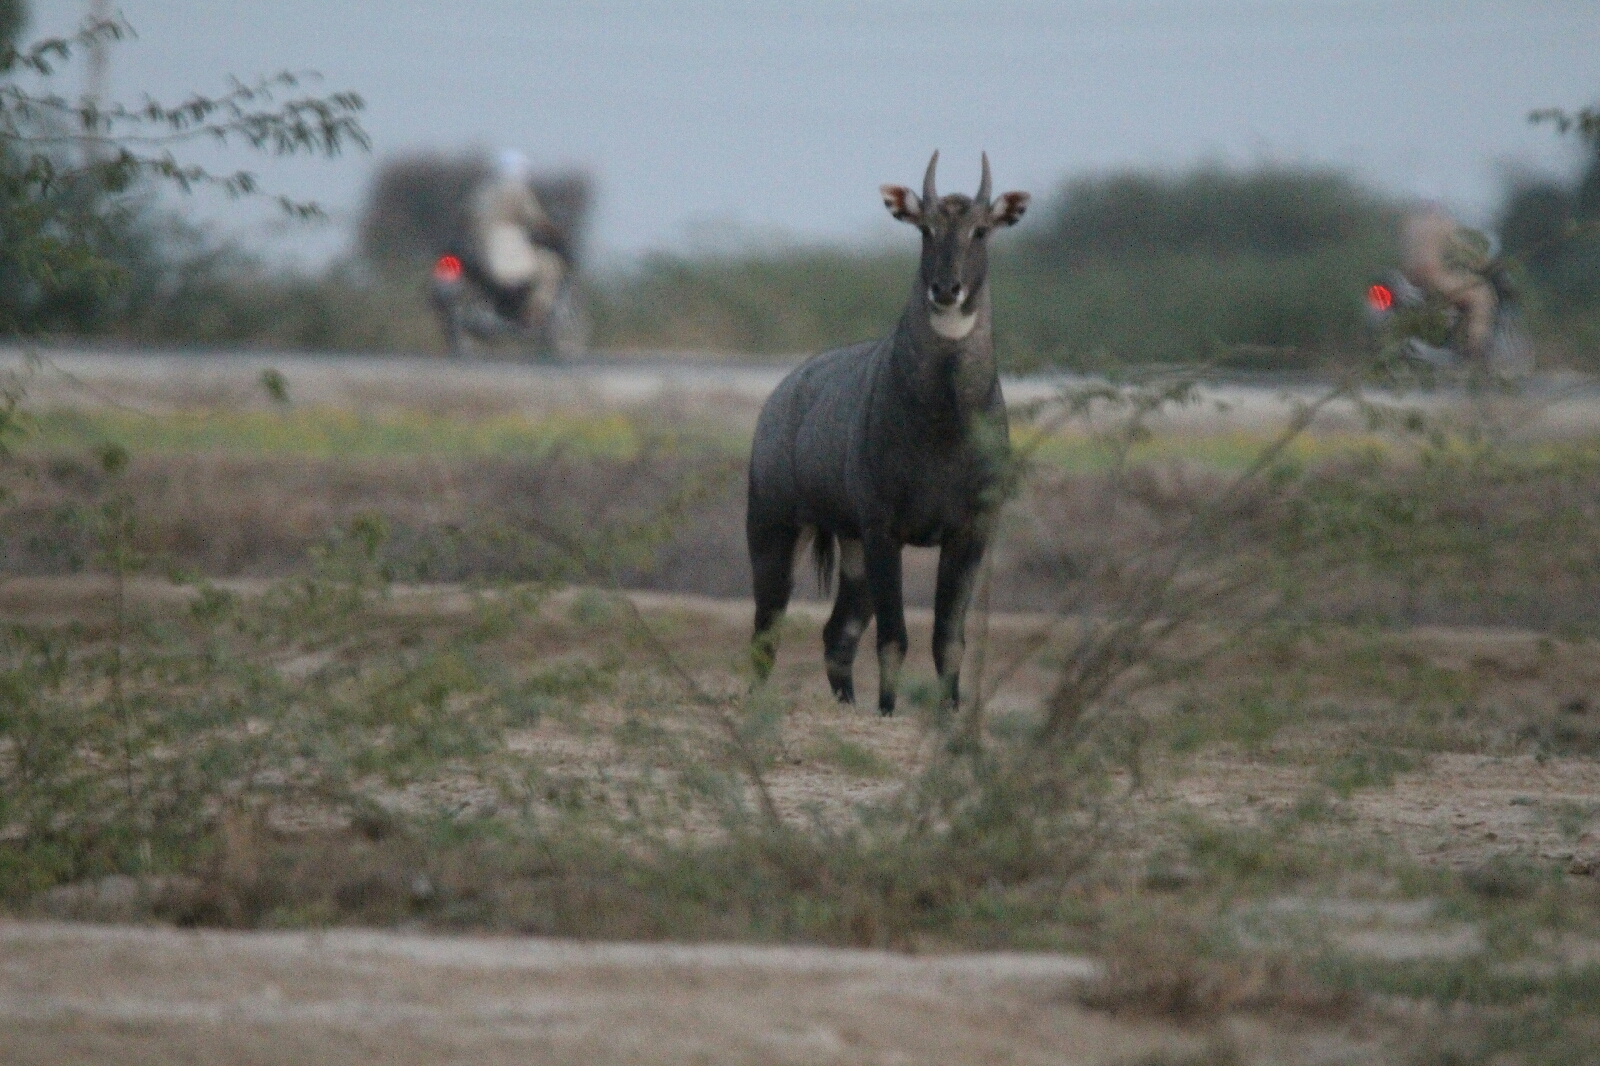 nilgai nilgai habitat nilgai picture nilgai video nilgai image nilgai facts नीलगाय nilgai animal nilgai meat nilgai attack nilgai accident nilgai animal in hindi nilgai animal images nilgai attack on man nilgai age nilgai blue bull nilgai bihar nilgai baby nilgai bhagane ka nilgai bhagane ka jugad nilgai belongs to the following family nilgai belong to which family nilgai cow nilgai colour nilgai cartoon nilgai classification nilgai culling nilgai calf nilgai cow images nilgai deer nilgai delhi nilgai dangerous nilgai drawing nilgai delhi airport nilgai dikhao nilgai nilgai description nilgai english meaning nilgai endangered nilgai english name nilgai english nilgai english word nilgai eating habits nilgai endangered species nilgai euro mount nilgai hunting nilgai height nilgai hindi nilgai hybrid nilgai haryana nilgai hunting in india nilgai hd video 375 h&h nilgai nilgai india nilgai in hindi nilgai in english nilgai iucn status nilgai in delhi nilgai in gurgaon nilgai janwar nilgai jump nilgai junglee nilgai jungali nilgai jangli janwar nilgai janwar ka photo nilgai jerky nilgai jangli nilgai nilgai kya hoti hai nilgai ki tasveer nilgai kya hai nilgai ka chitra nilgai kya hota hai nilgai ka video nilgai kaisa hota hai nilgai ki awaz nilgai lifespan nilgai location nilgai laguna atascosa nilgai leather nilgai land cut nilgai look like nilgai logo nilgai laws in india nilgai milk nilgai mating nilgai means nilgai mating video nilgai mythology nilgai meat benefits nilgai m o que significa nilgai nilgai pics nilgai pronunciation nilgai population nilgai price nilgai pashu nilgai power nilgai price in india nilgai qurbani nilgai running nilgai rajasthan nilgai recipes nilgai rug nilgai roast recipes nilgai range nilgai range texas nilgai ribs nilgai scientific name nilgai speed nilgai sound nilgai state animal nilgai schedule nilgai speciality nilgai status nilgai song what is a nilgai nilgai texas nilgai tamil name nilgai telugu means nilgai texas hunt nilgai tracks nilgai taste nilgai texas range nilgai trophy nilgai upsc nilgai uses nilgai uttar pradesh nilgai up nilgai usa nilgai unscramble nilgai urine nilgai under nilgai video in hindi nilgai vitals diagram nilgai vitals nilgai vermin nilgai vs eland nilgai voice nilgai vs lion nilgai weight nilgai wild boar nilgai wikipedia in hindi nilgai wala cartoon nilgai wala video nilgai wpa nilgai wallpaper nilgai which type of animal nilgai youtube nilgai youtube video yturria ranch nilgai hunting young nilgai yturria ranch nilgai youtube nilgai hunting nilgai meat yield nilgai mating youtube nilgai zoo nilgai kill zone zoo animal nilgai 30-06 nilgai 25-06 nilgai nilgai 200 270 for nilgai nilgai 308 nilgai 30-06 308 vs nilgai 45-70 nilgai 450 bushmaster nilgai nilgai nilgai nilgai nilgai nilgai 6.5 creedmoor nilgai 7 mag for nilgai